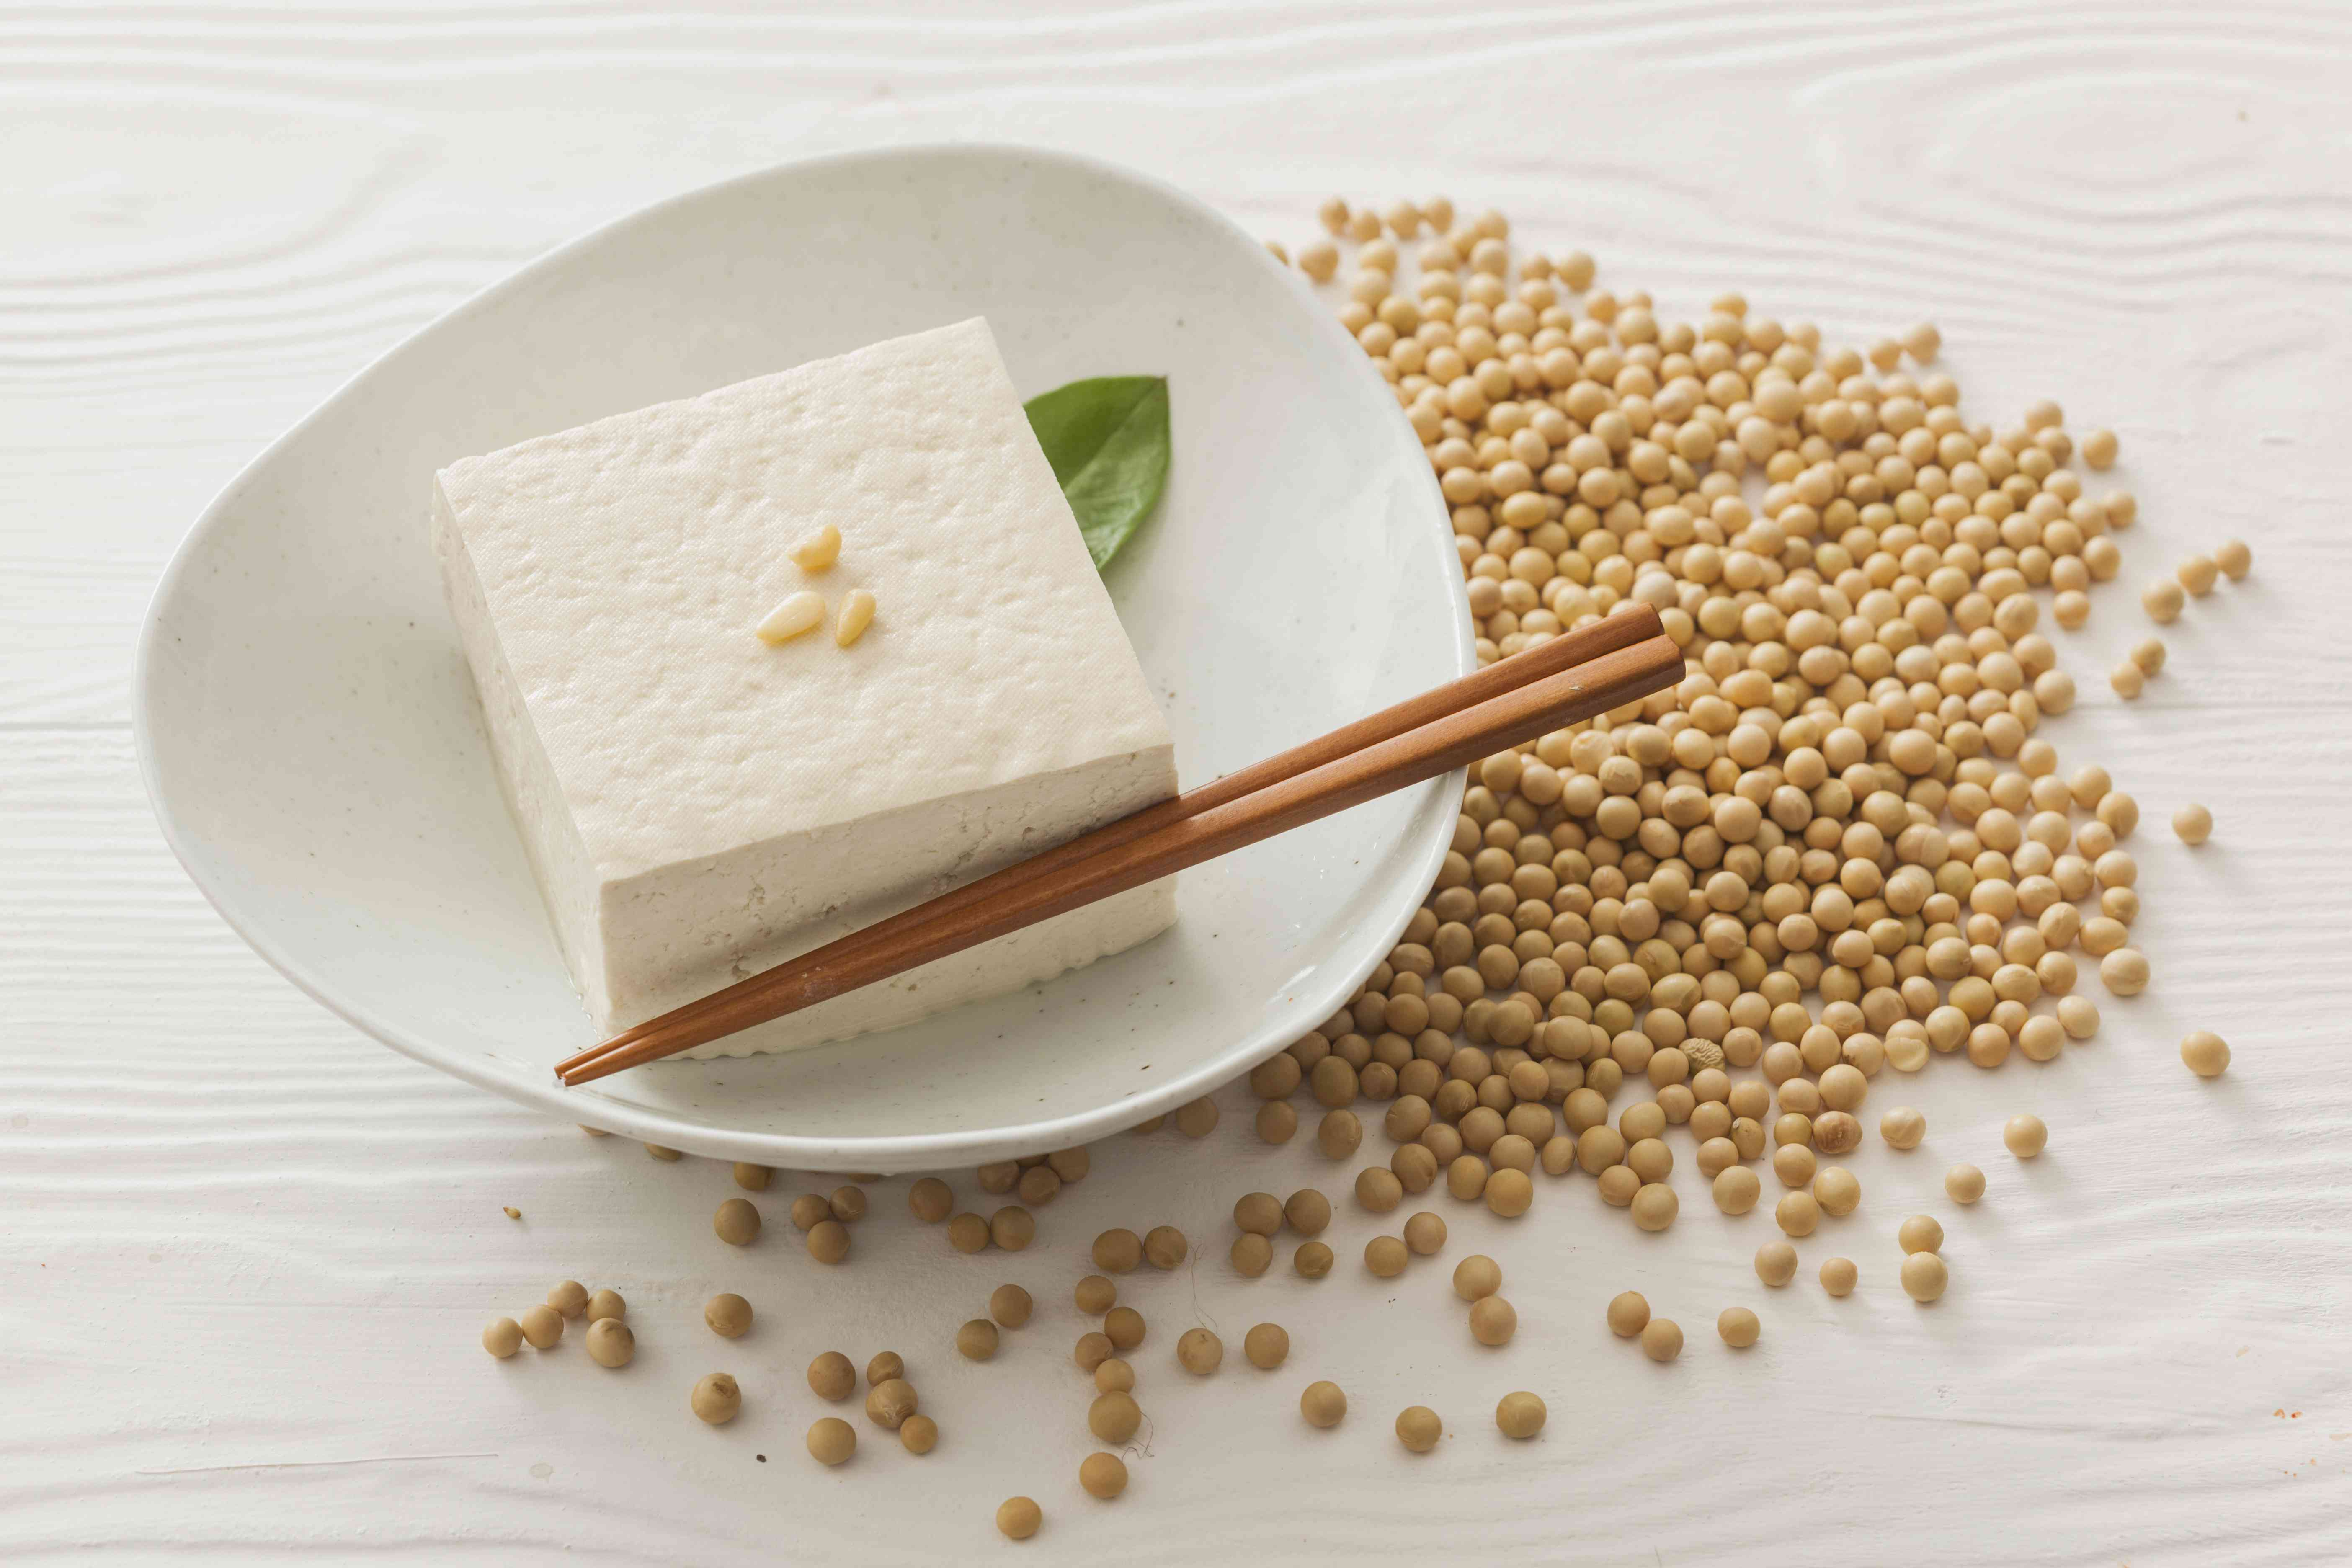 Soy beans and tofu on a white plate